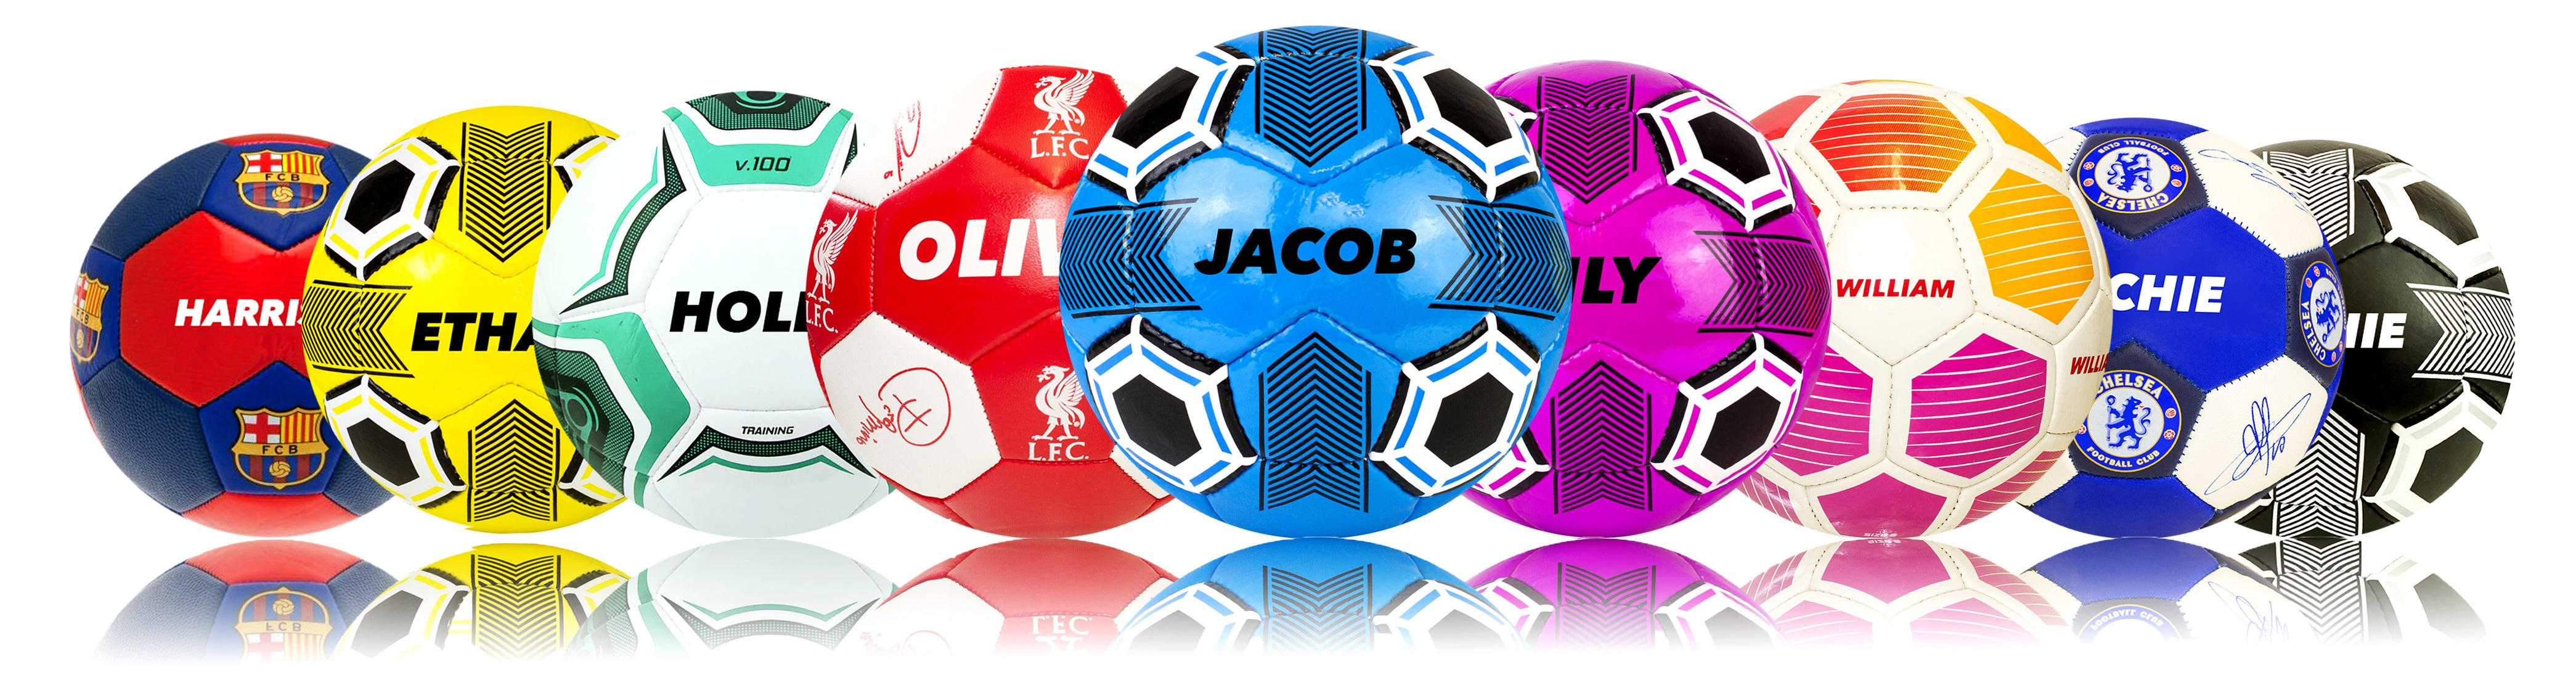 b9f192064a2 Personalised Footballs - Printed footballs with names! Football Gifts